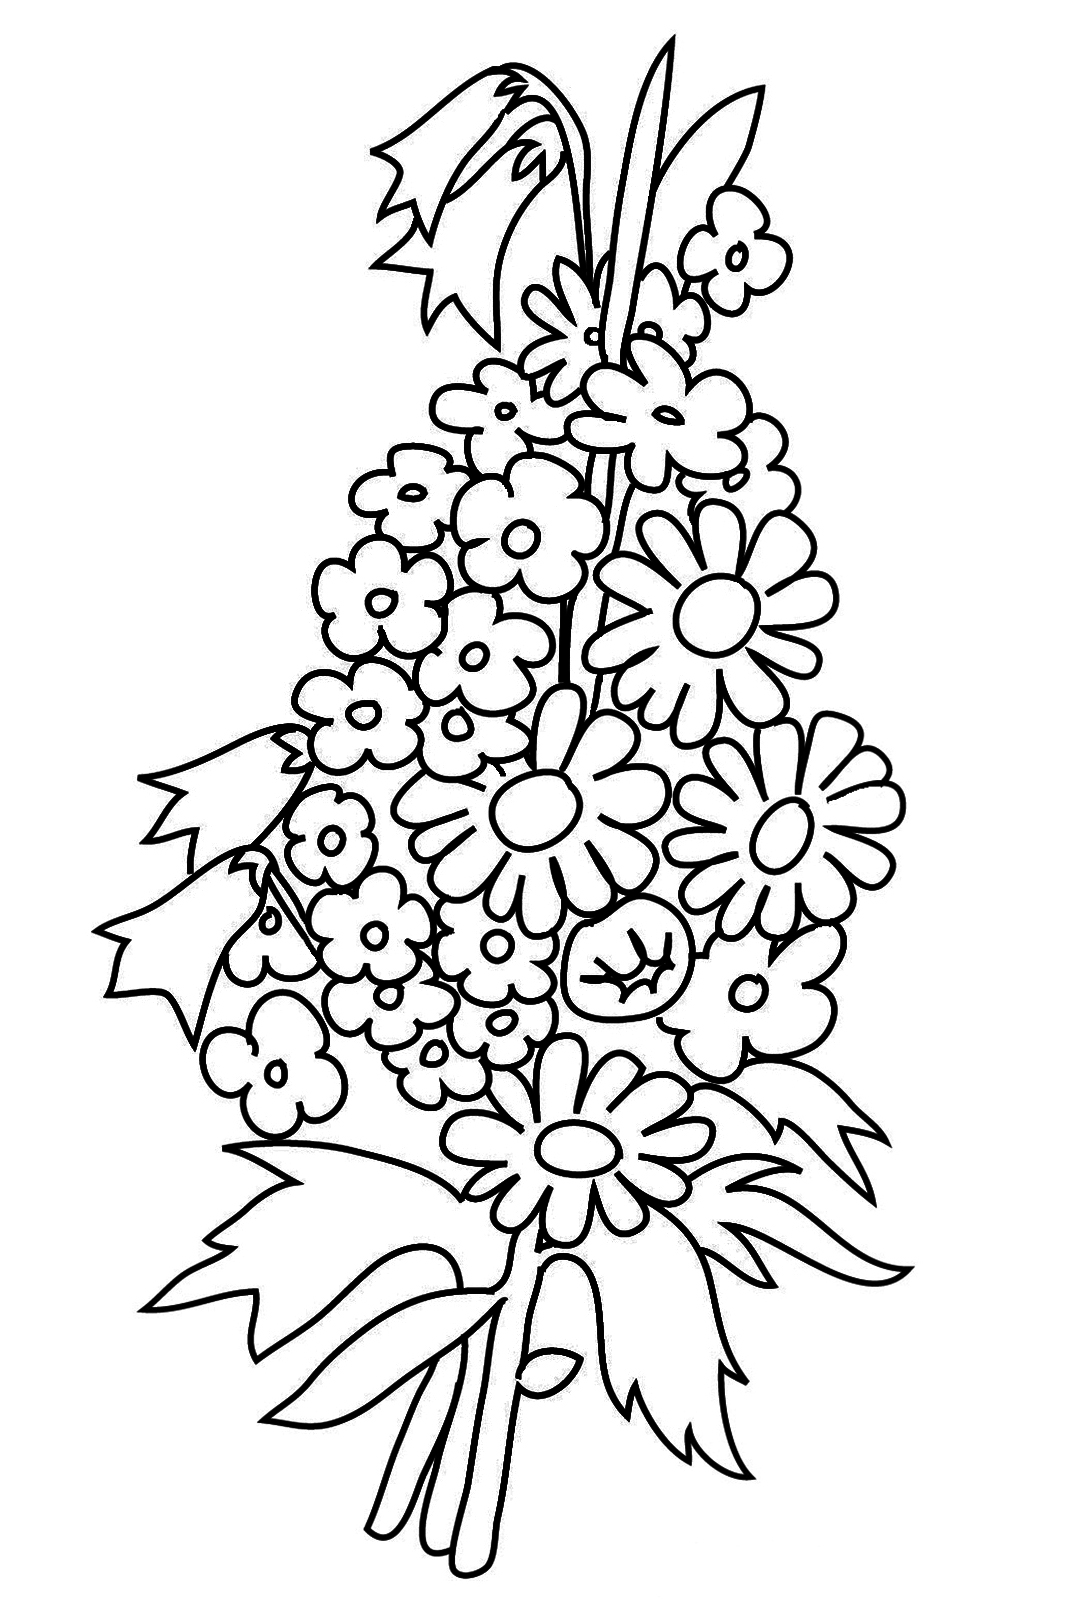 colouring flowers coloring pages for kids tulip coloring pages for kids flowers colouring